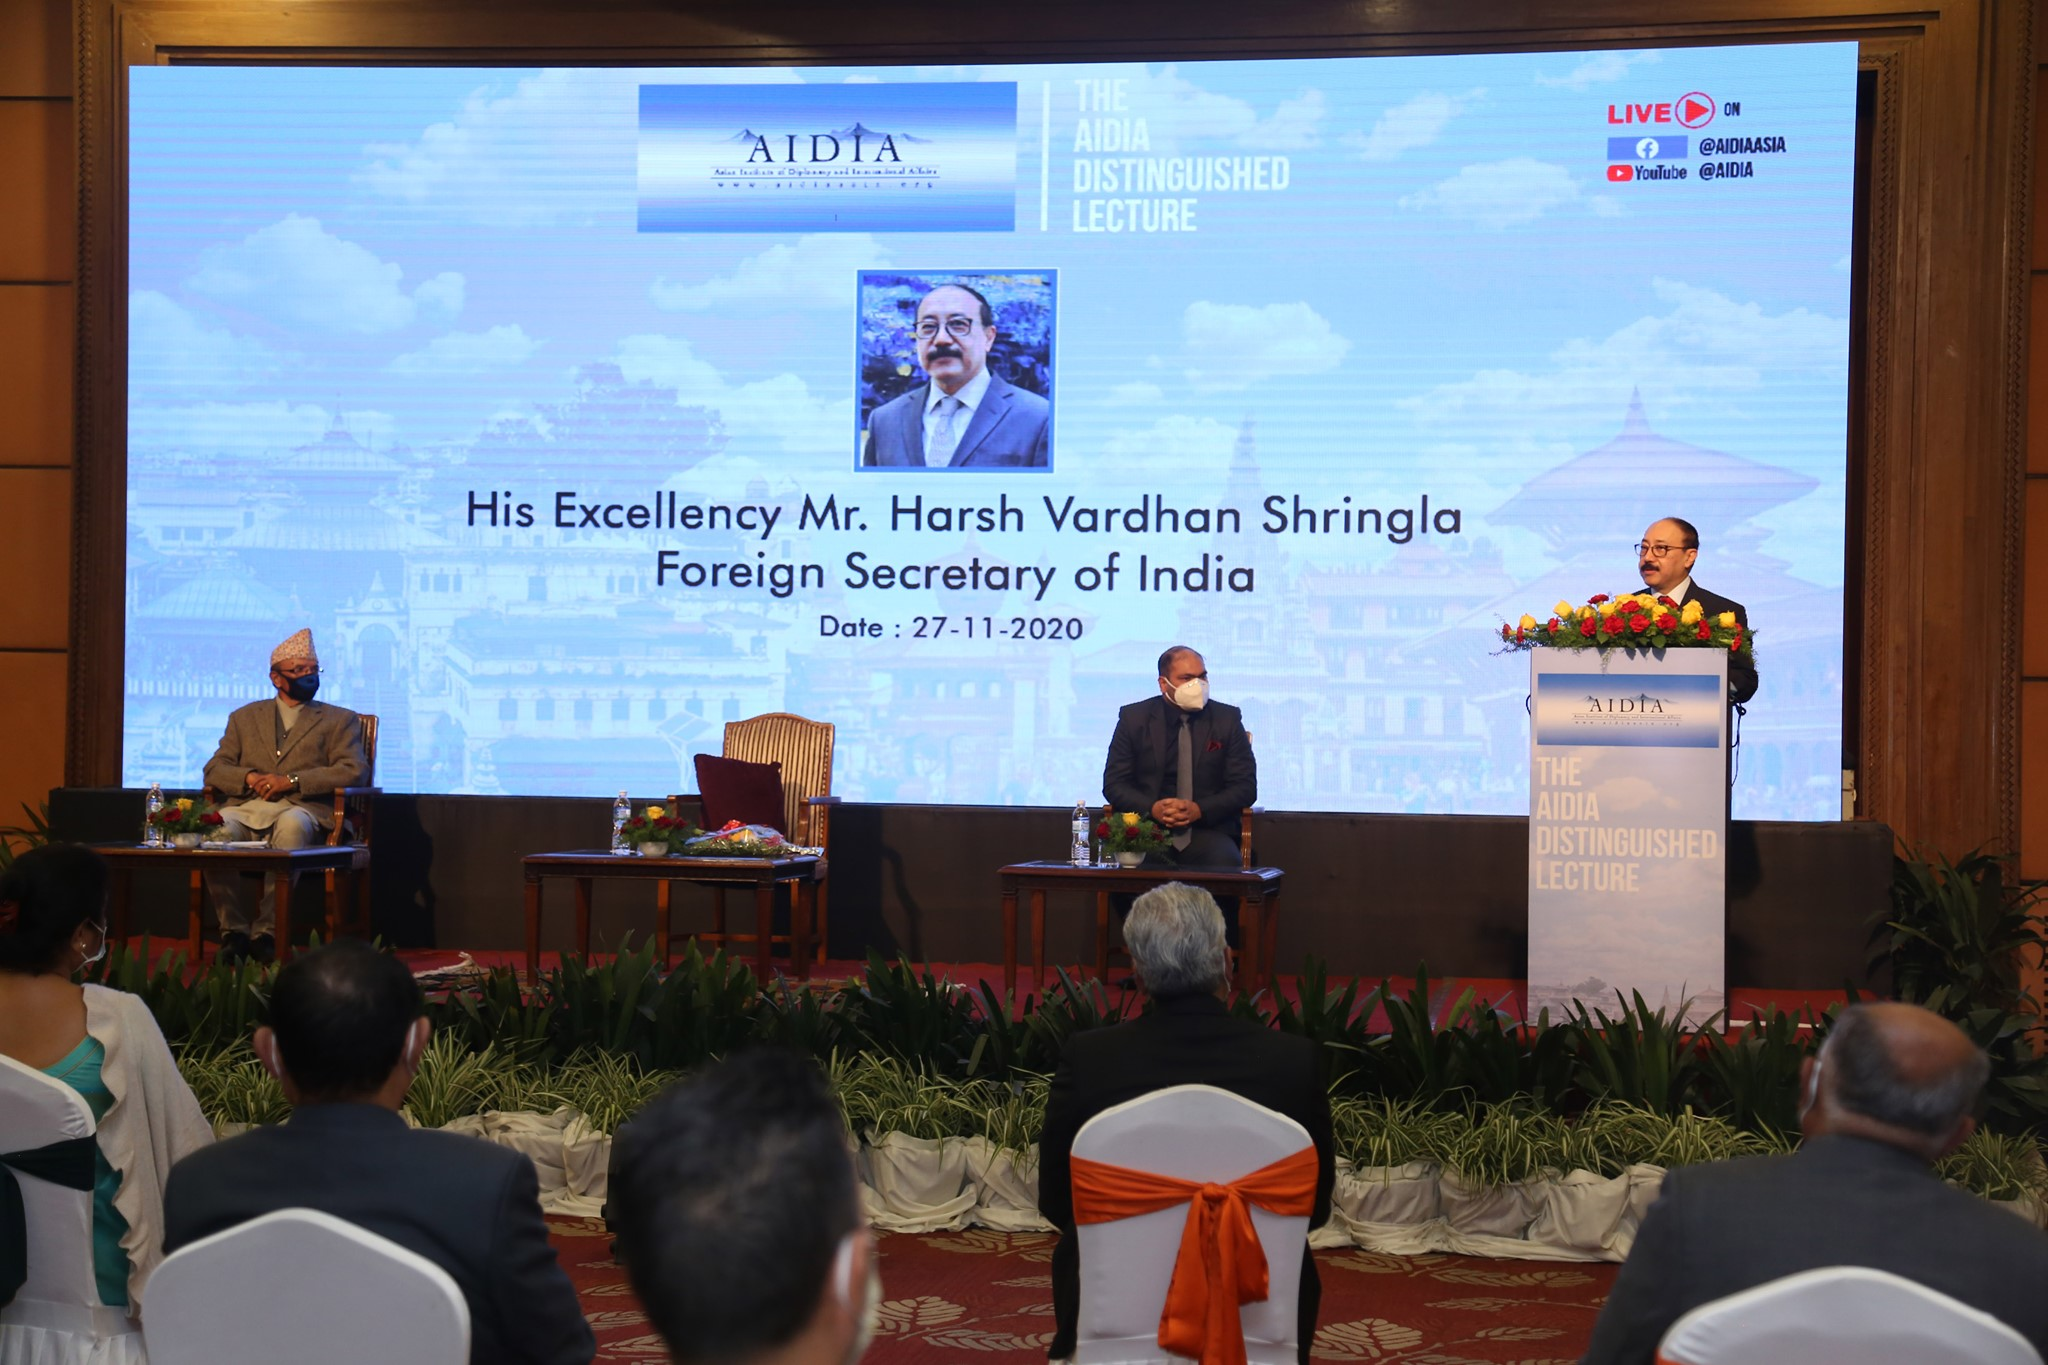 AIDIA Distinguished Lecture by H.E. Mr. Harsh Vardhan Shringla